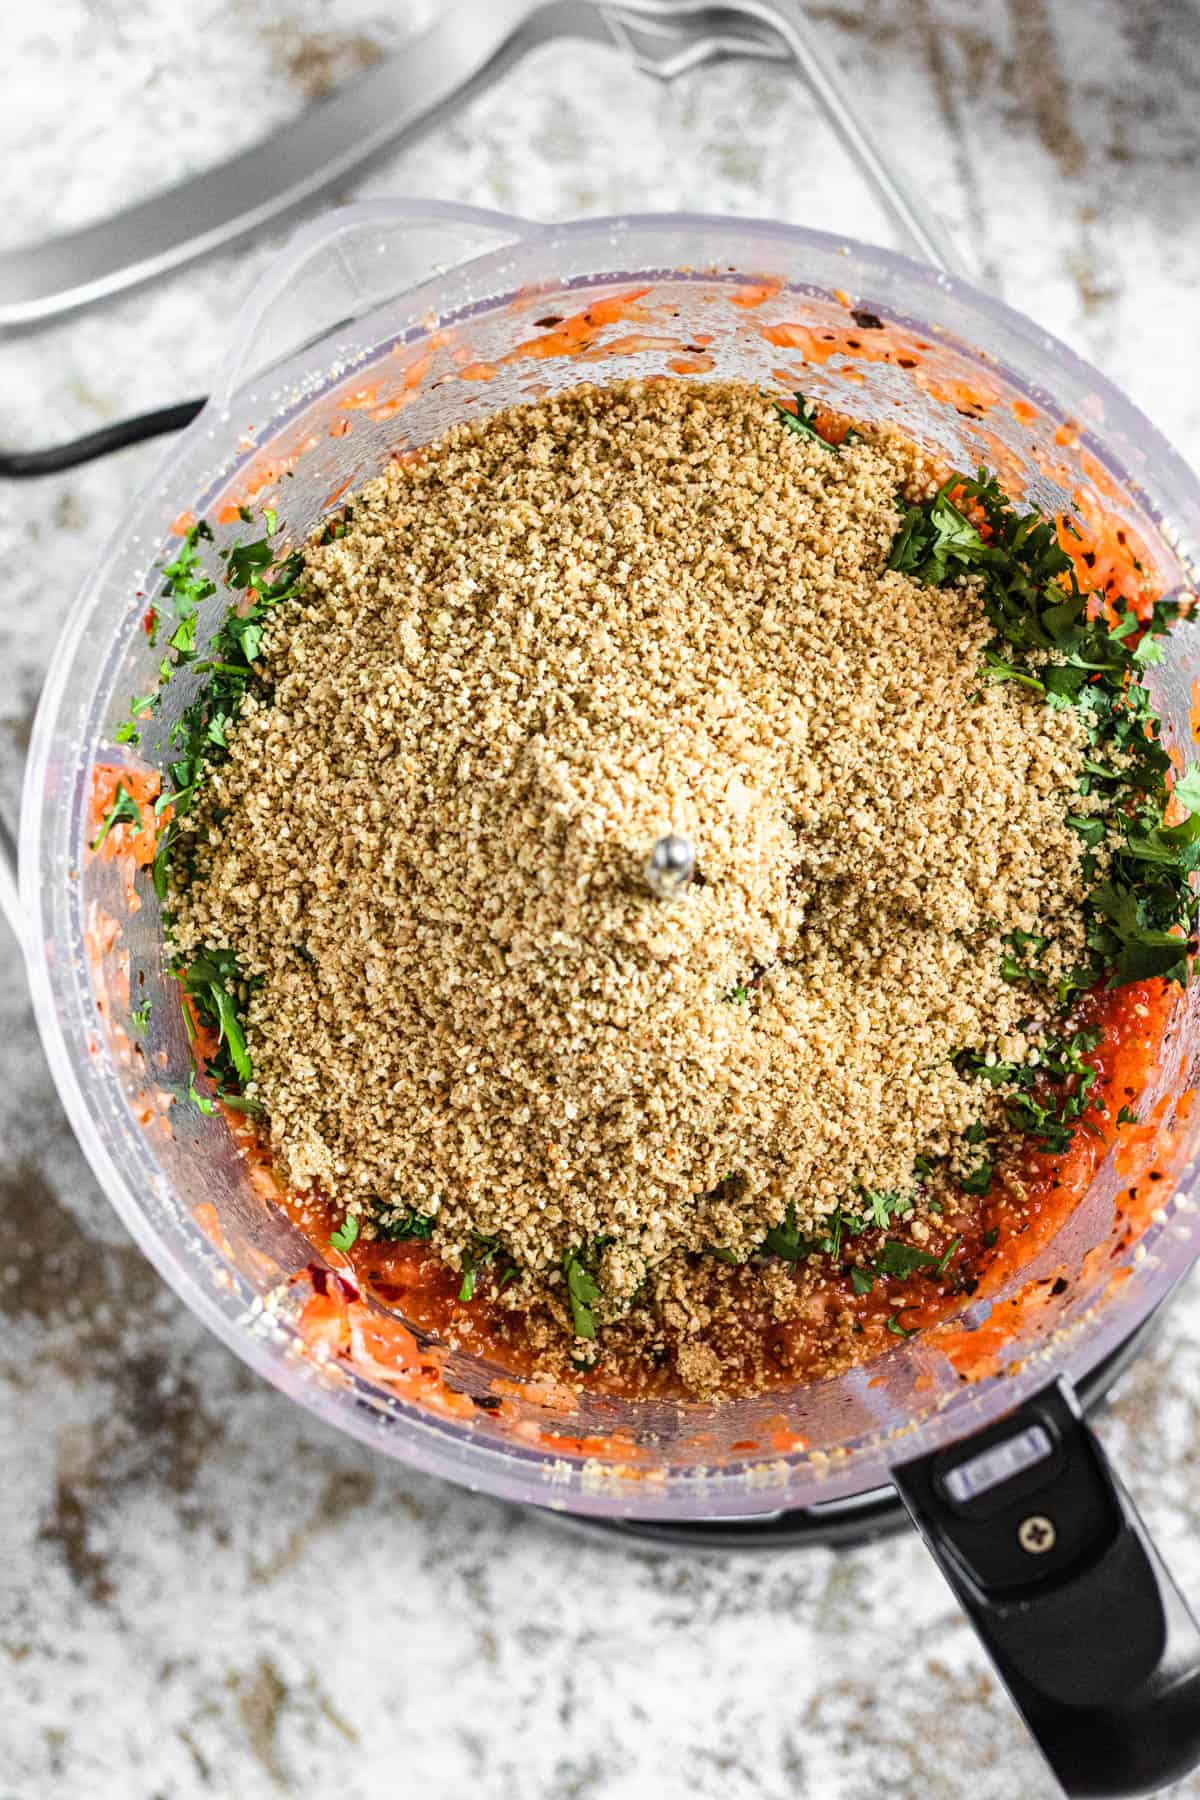 Food processor with blended tomatoes, cilantro, and ground sesame seeds